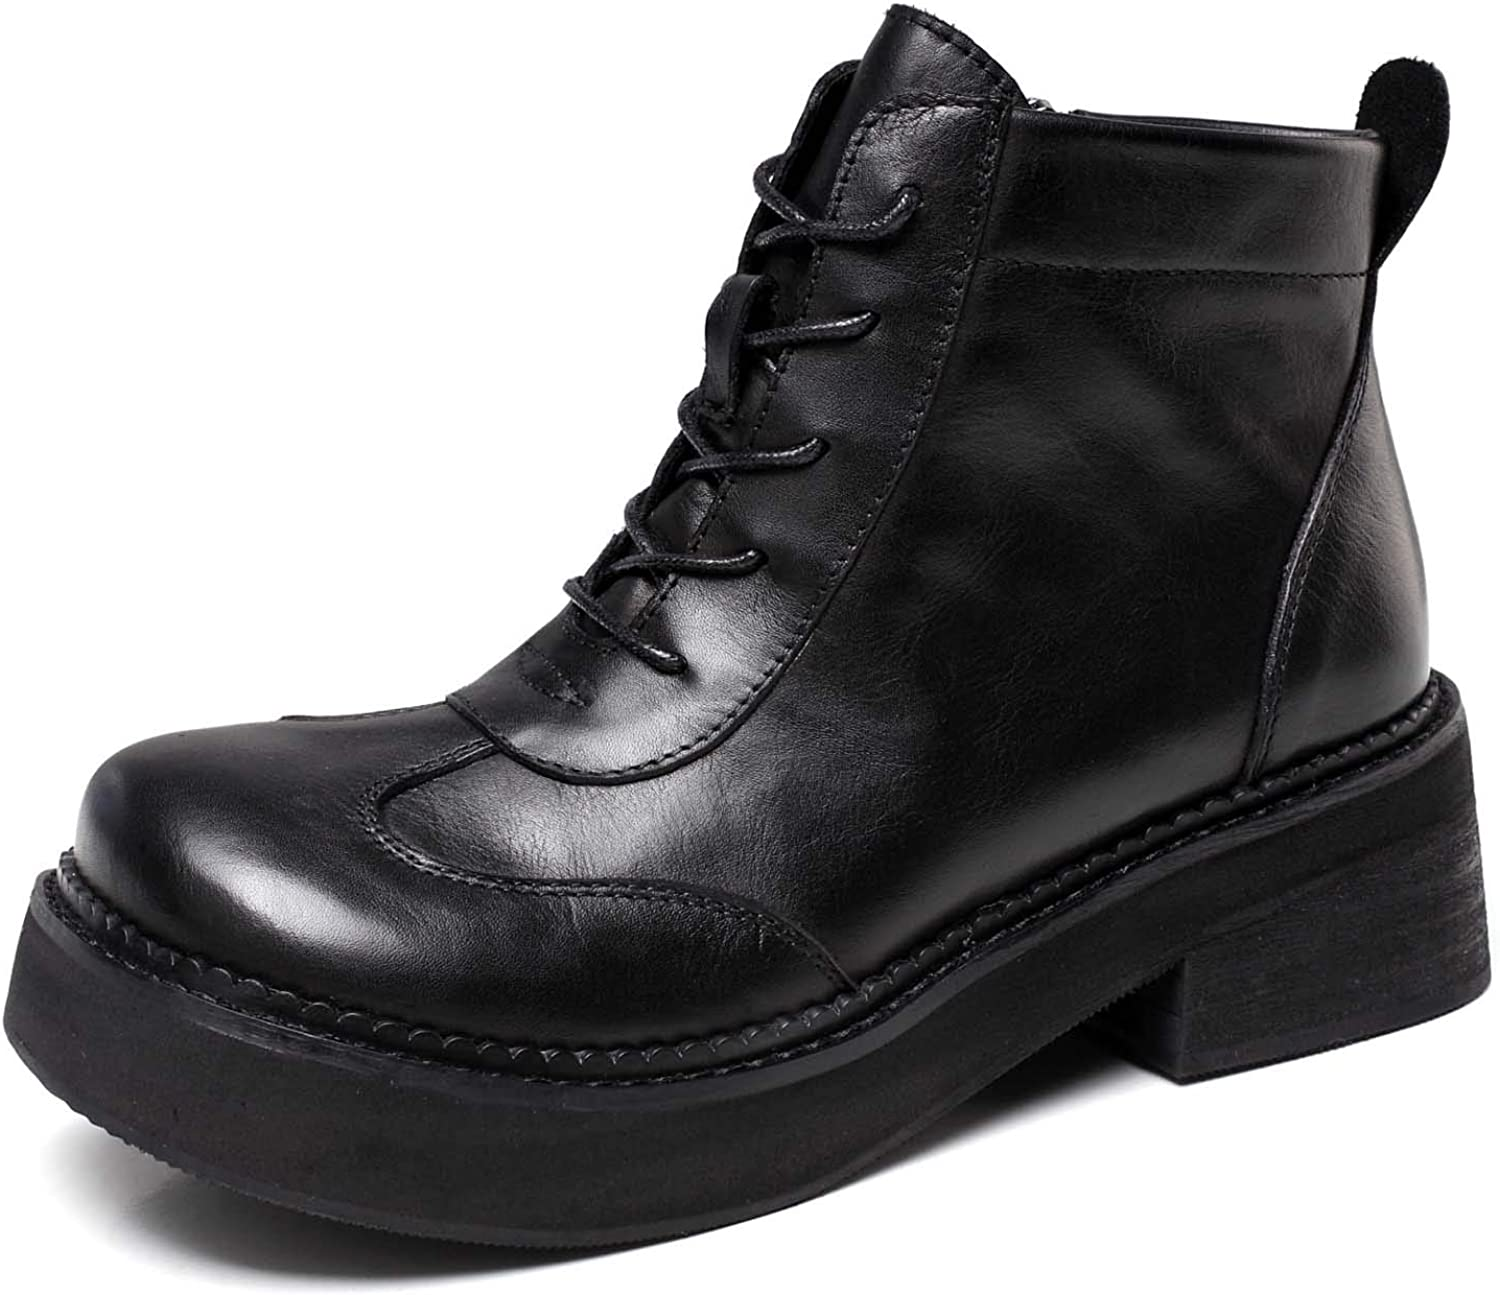 Women's Leather Ankle Boots with Low Heel Casual Boots Black with Retro shoes